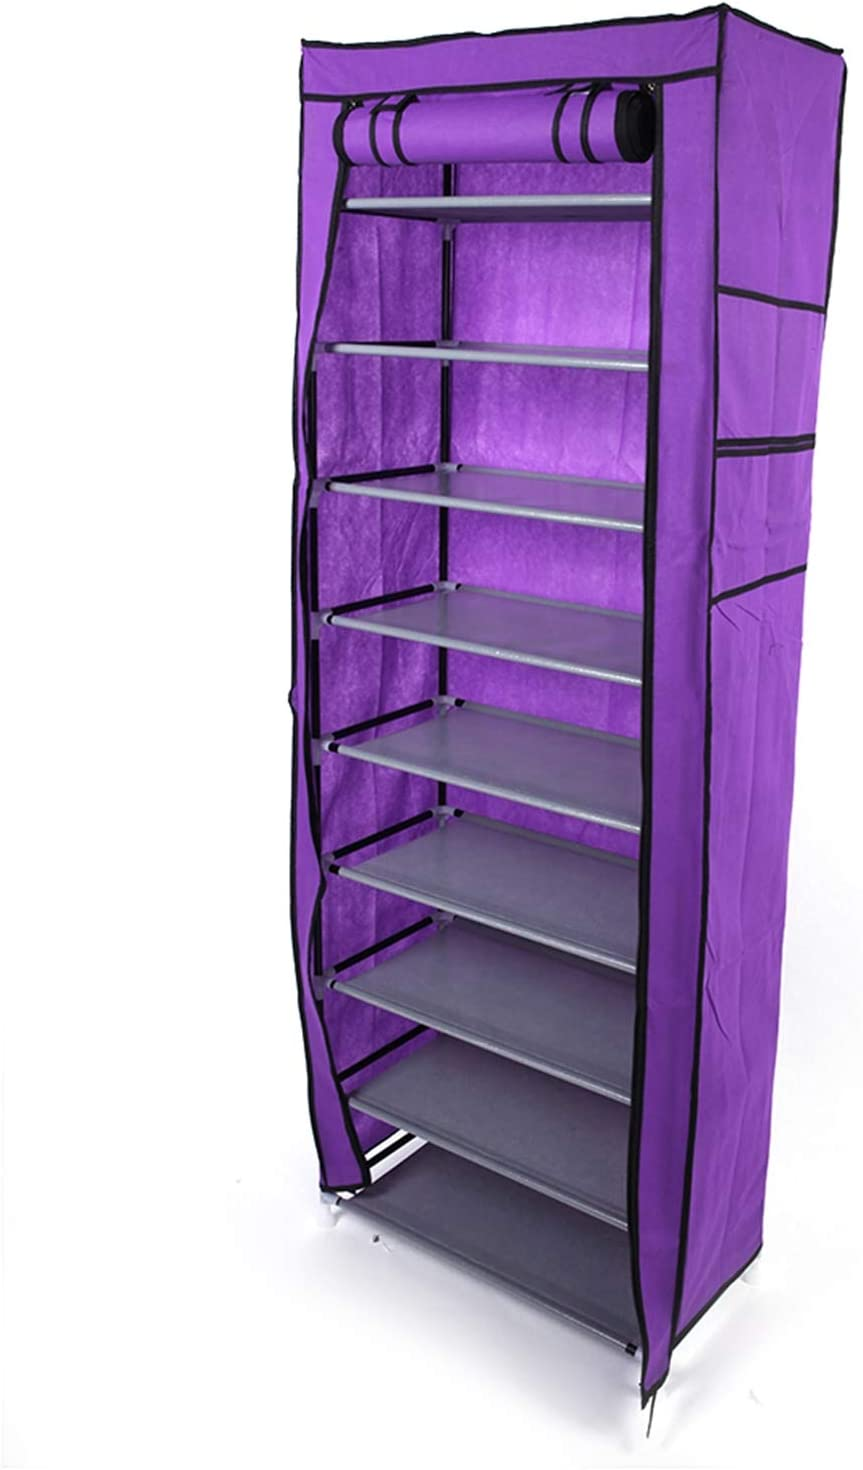 Aike Home 10 Tiers Shoe Rack with Dustproof Cover Closet Shoe Storage Cabinet Organizer 30-Pairs Portable Shoe Rack with Non-woven Fabric Cover (Purple)